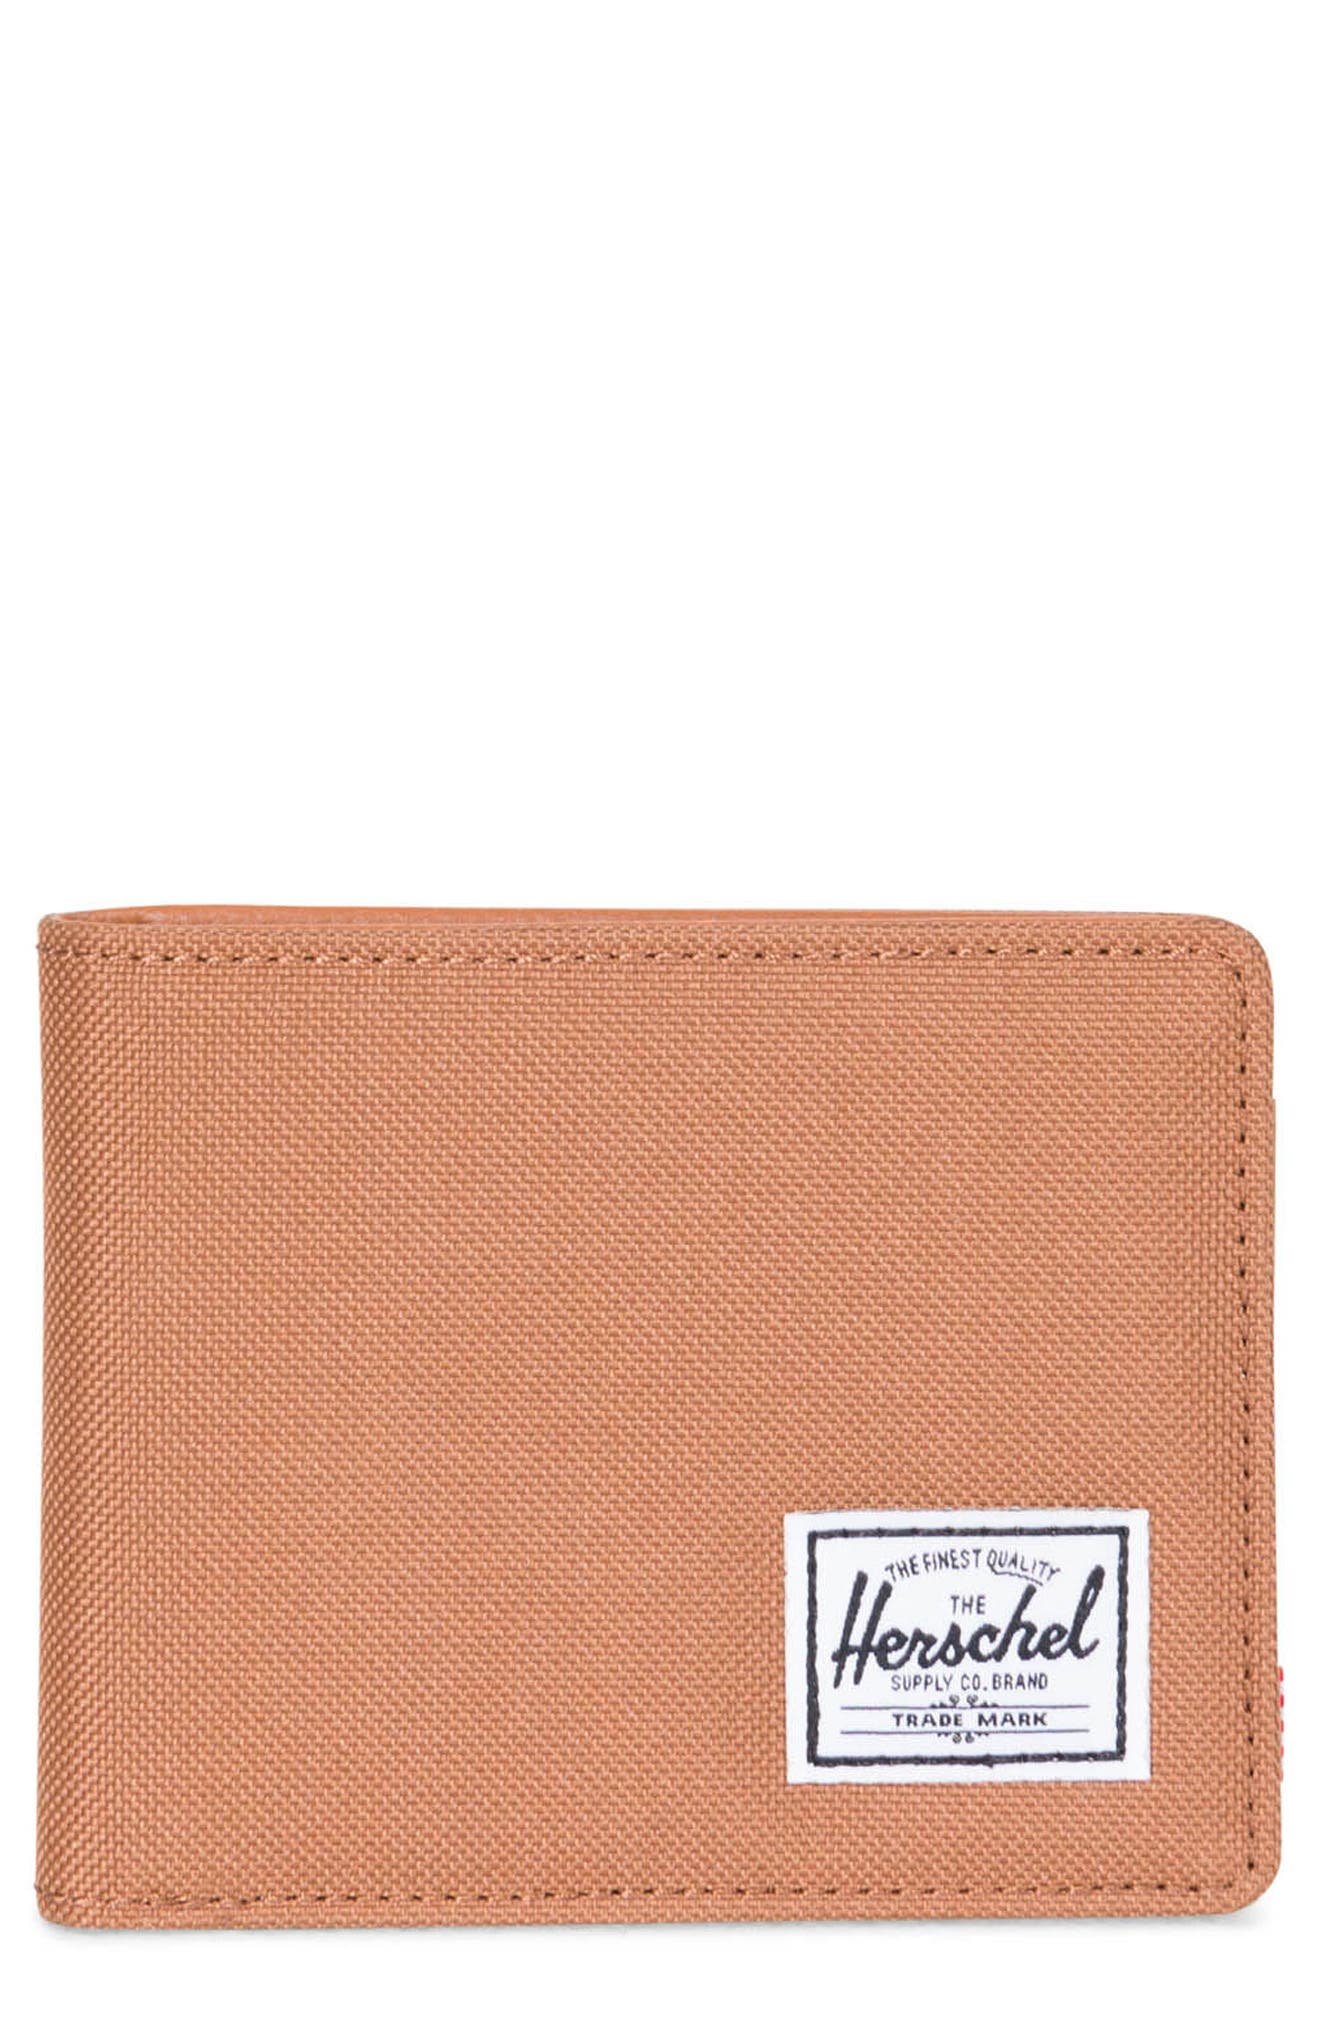 Herschel Supply Co. Hank Bifold RFID Wallet